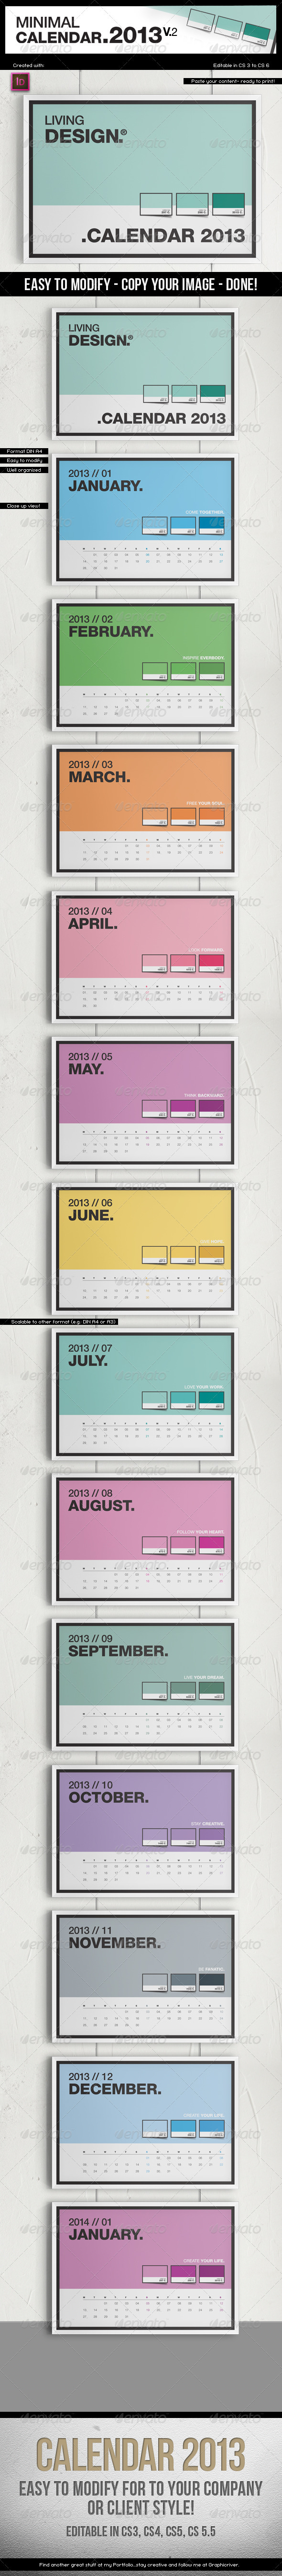 Calendar 2013 v2 // A4 Template // Pantone ® Style - Calendars Stationery